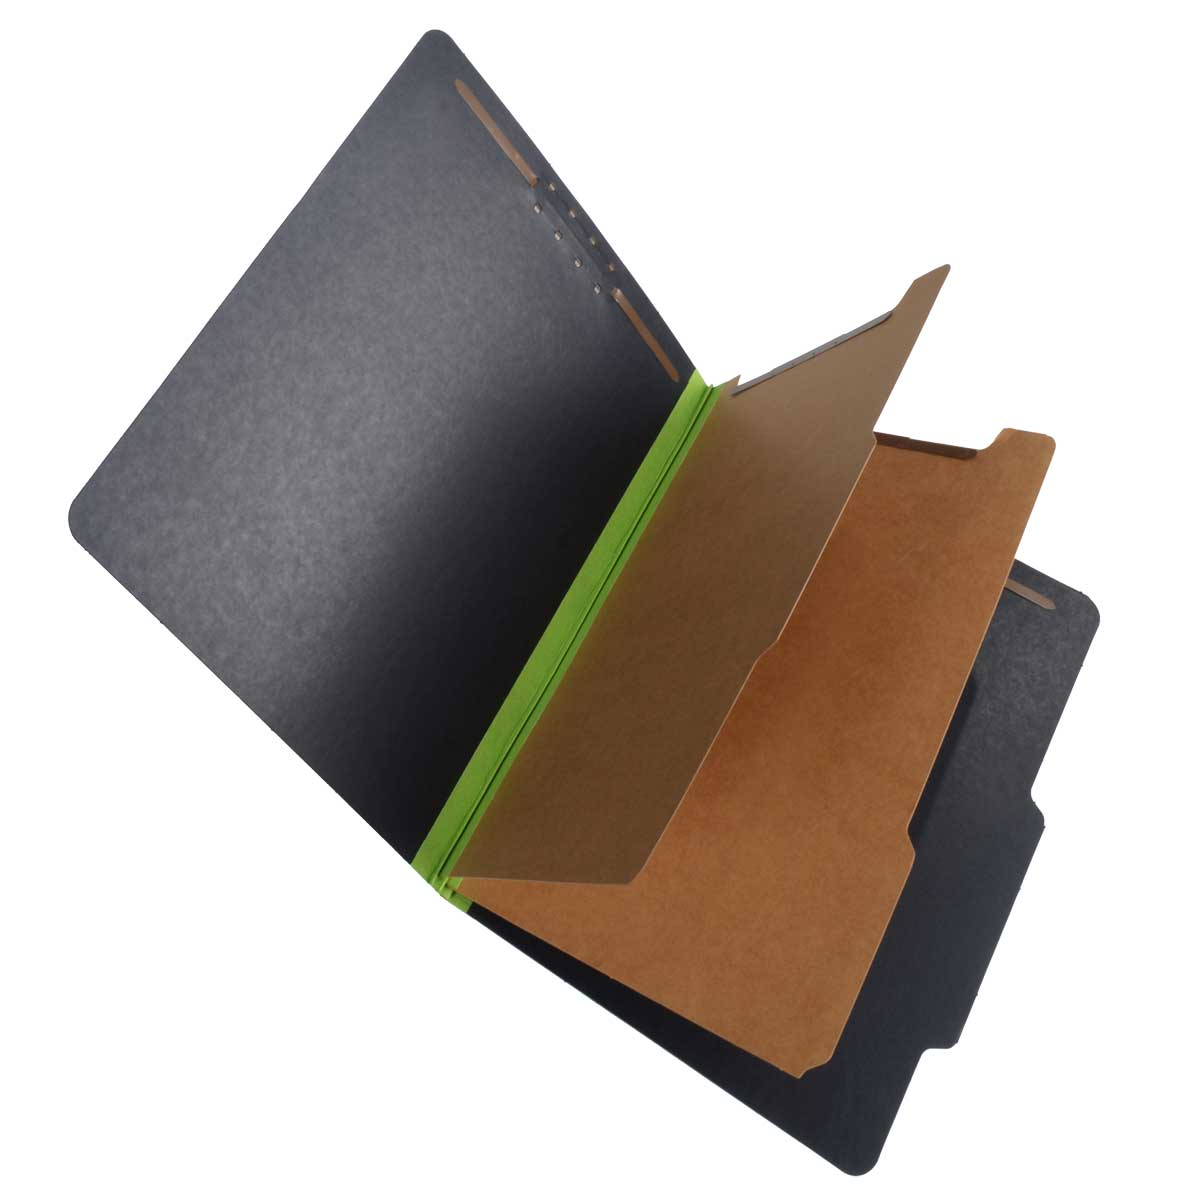 S-62625 - SJ Paper S62625 Match 25 Pt. Fusion Black Pressboard Classification Folders, 2/5 Cut ROC Top Tab, Letter Size, 2 Dividers, Green tyvek (Box of 15)